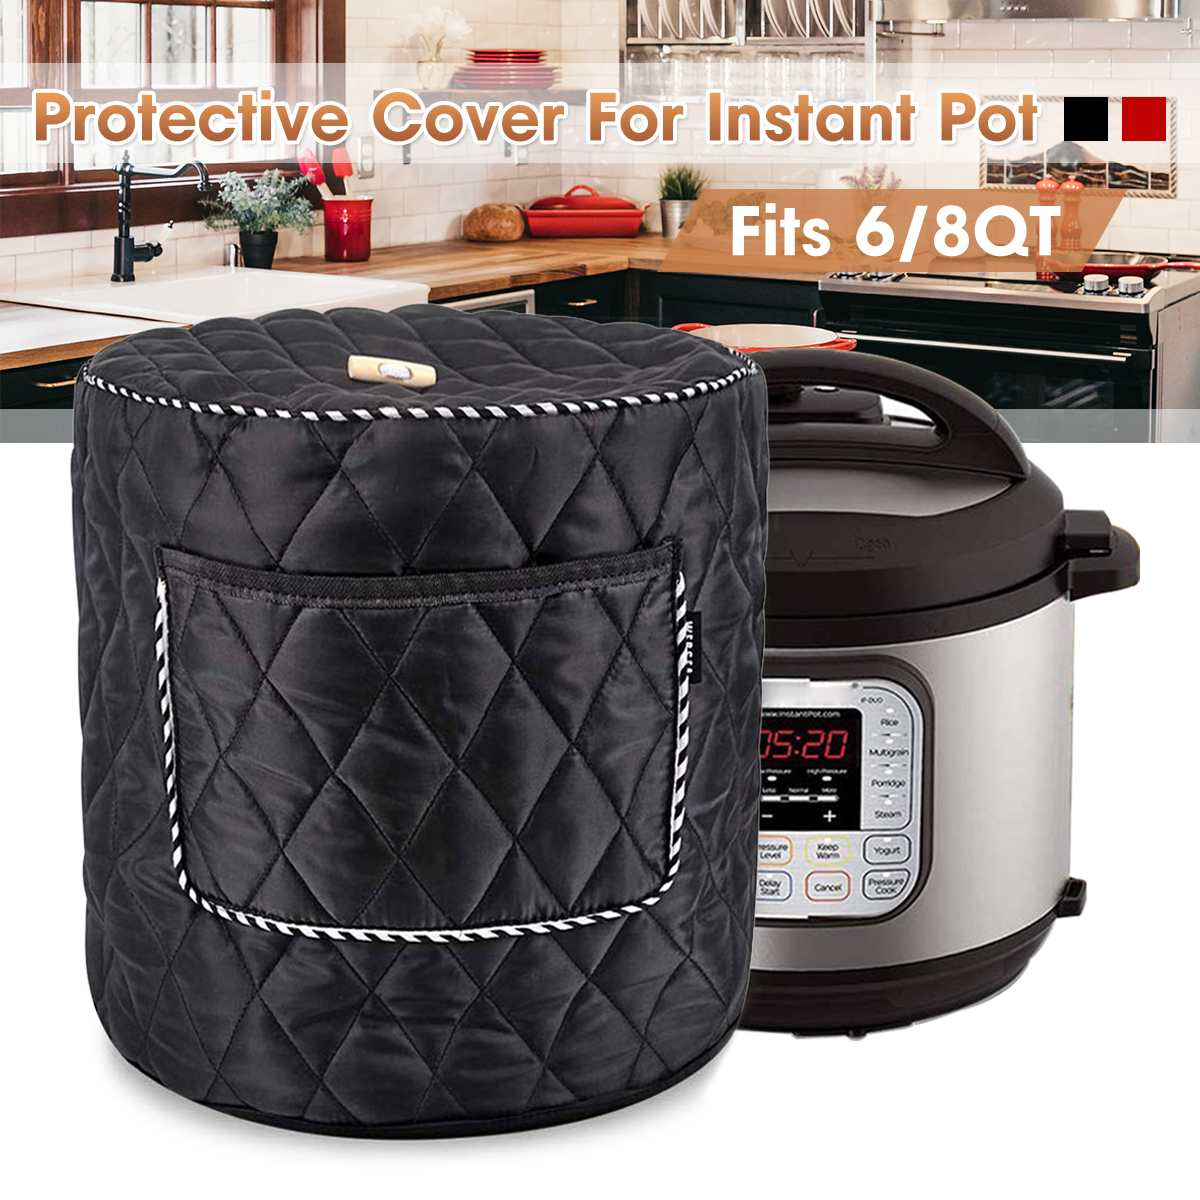 For 6/8QT Electric Pressure Cooker Cover Cotton Dust Cover Home Kitchen Accessories Cleaning Tool Black Red